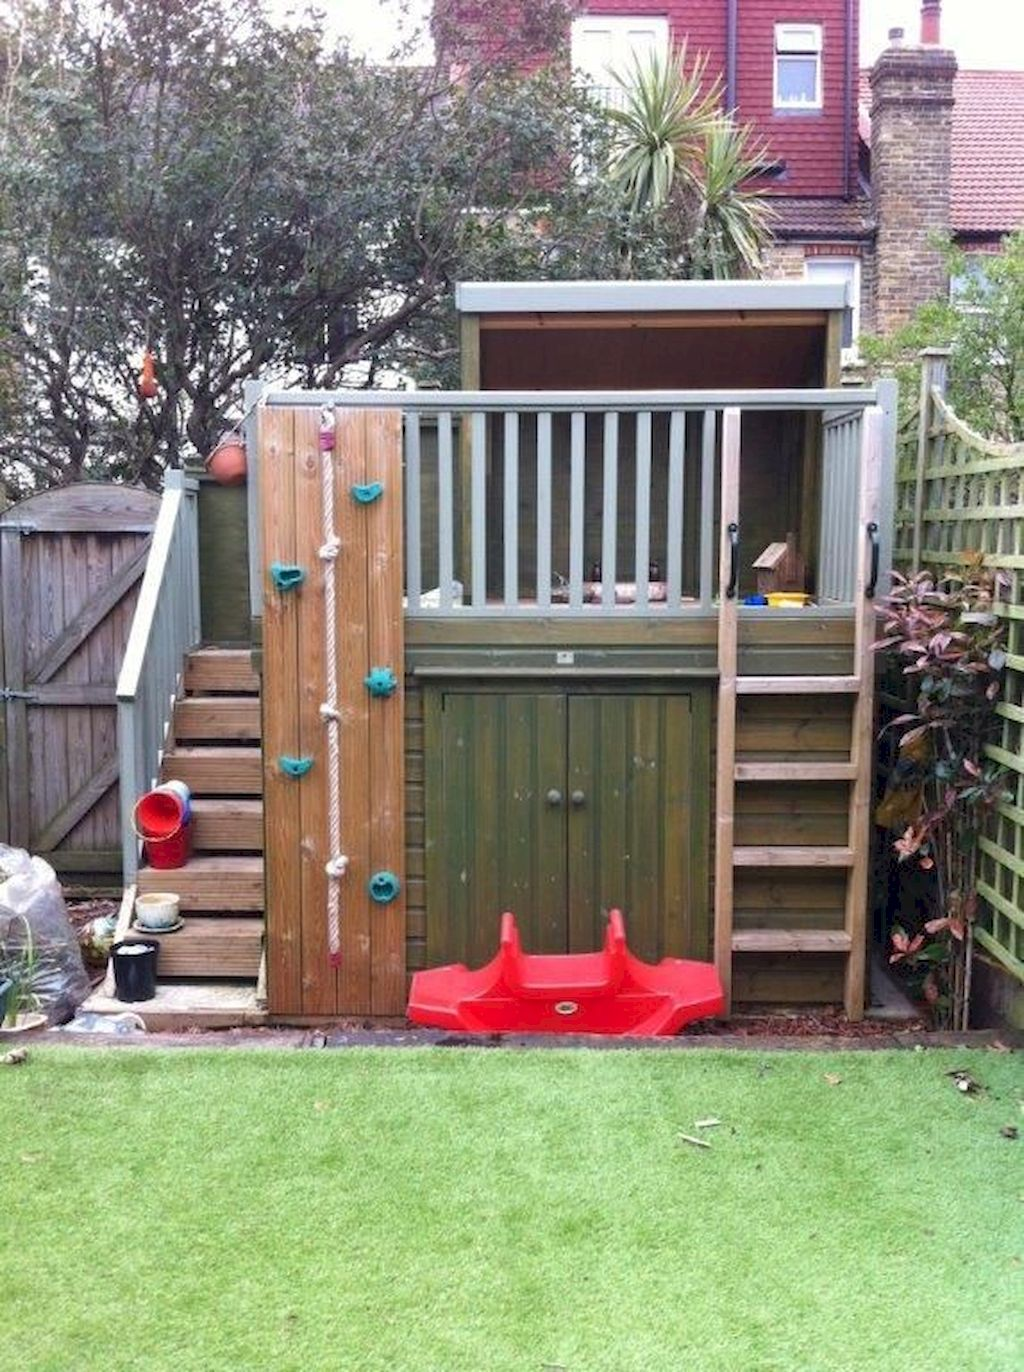 Elegant Playhouse Plan Into Your Existing Backyard Space